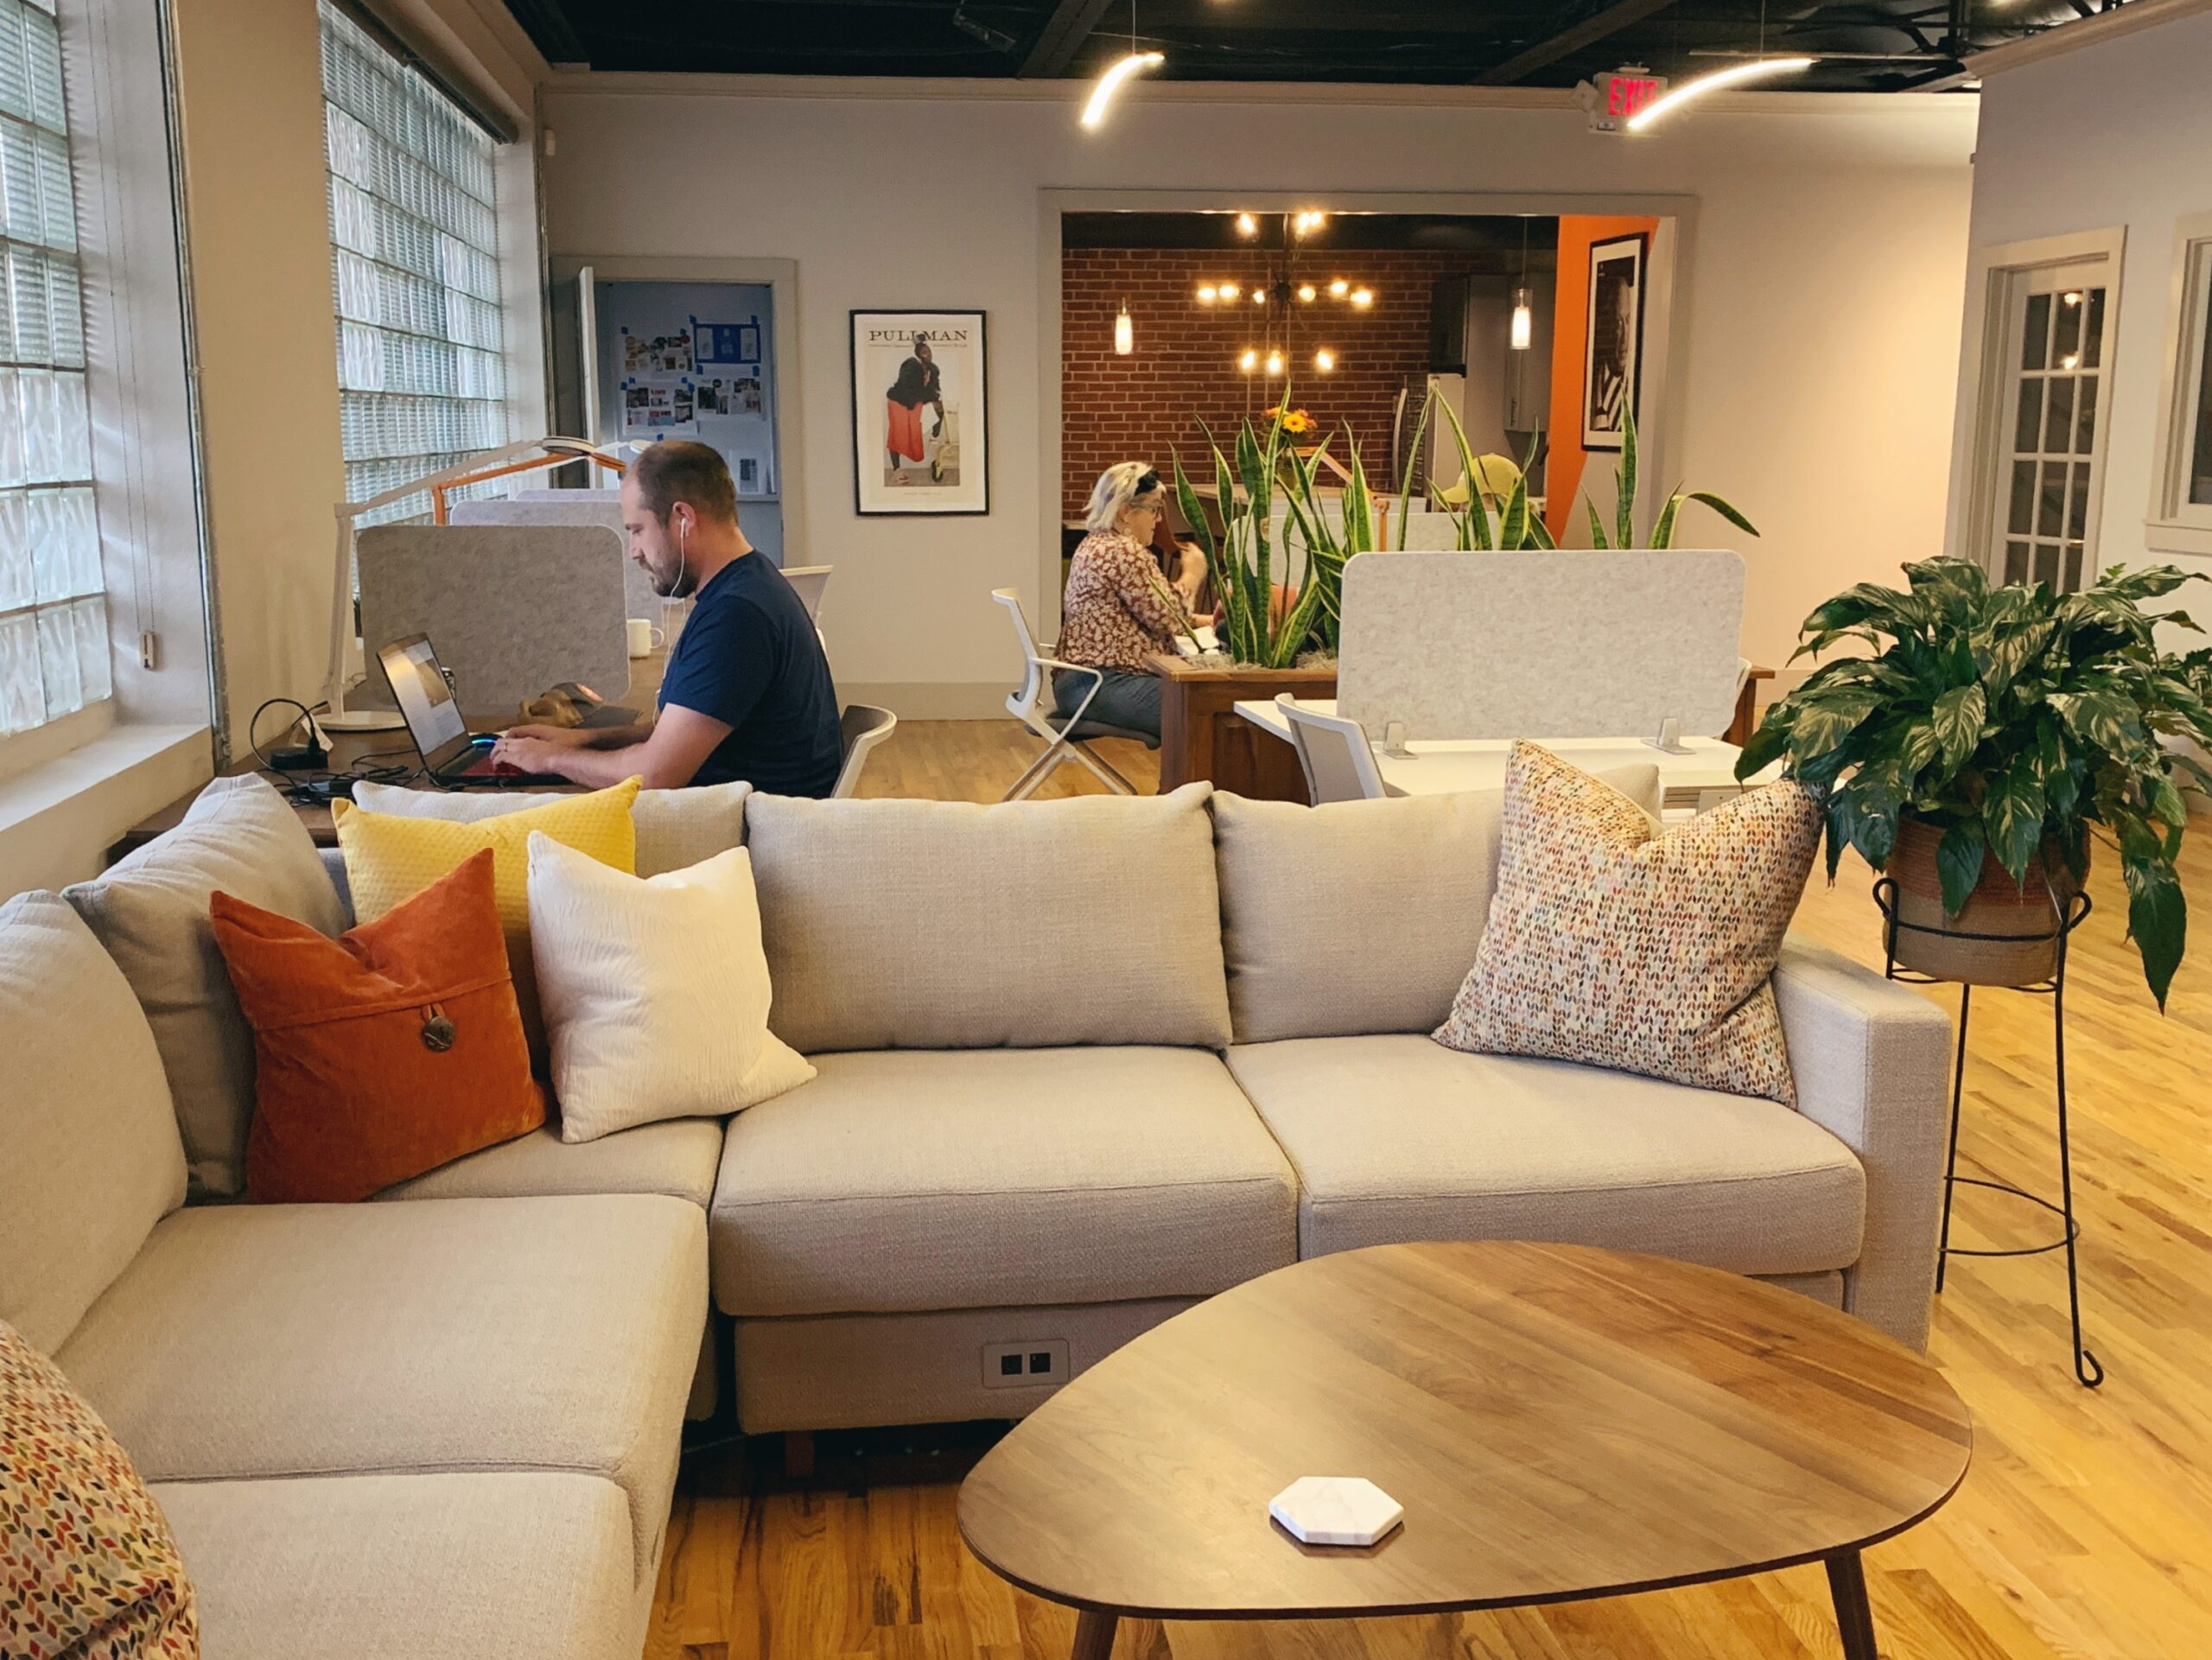 people working at open desks in a coworking space